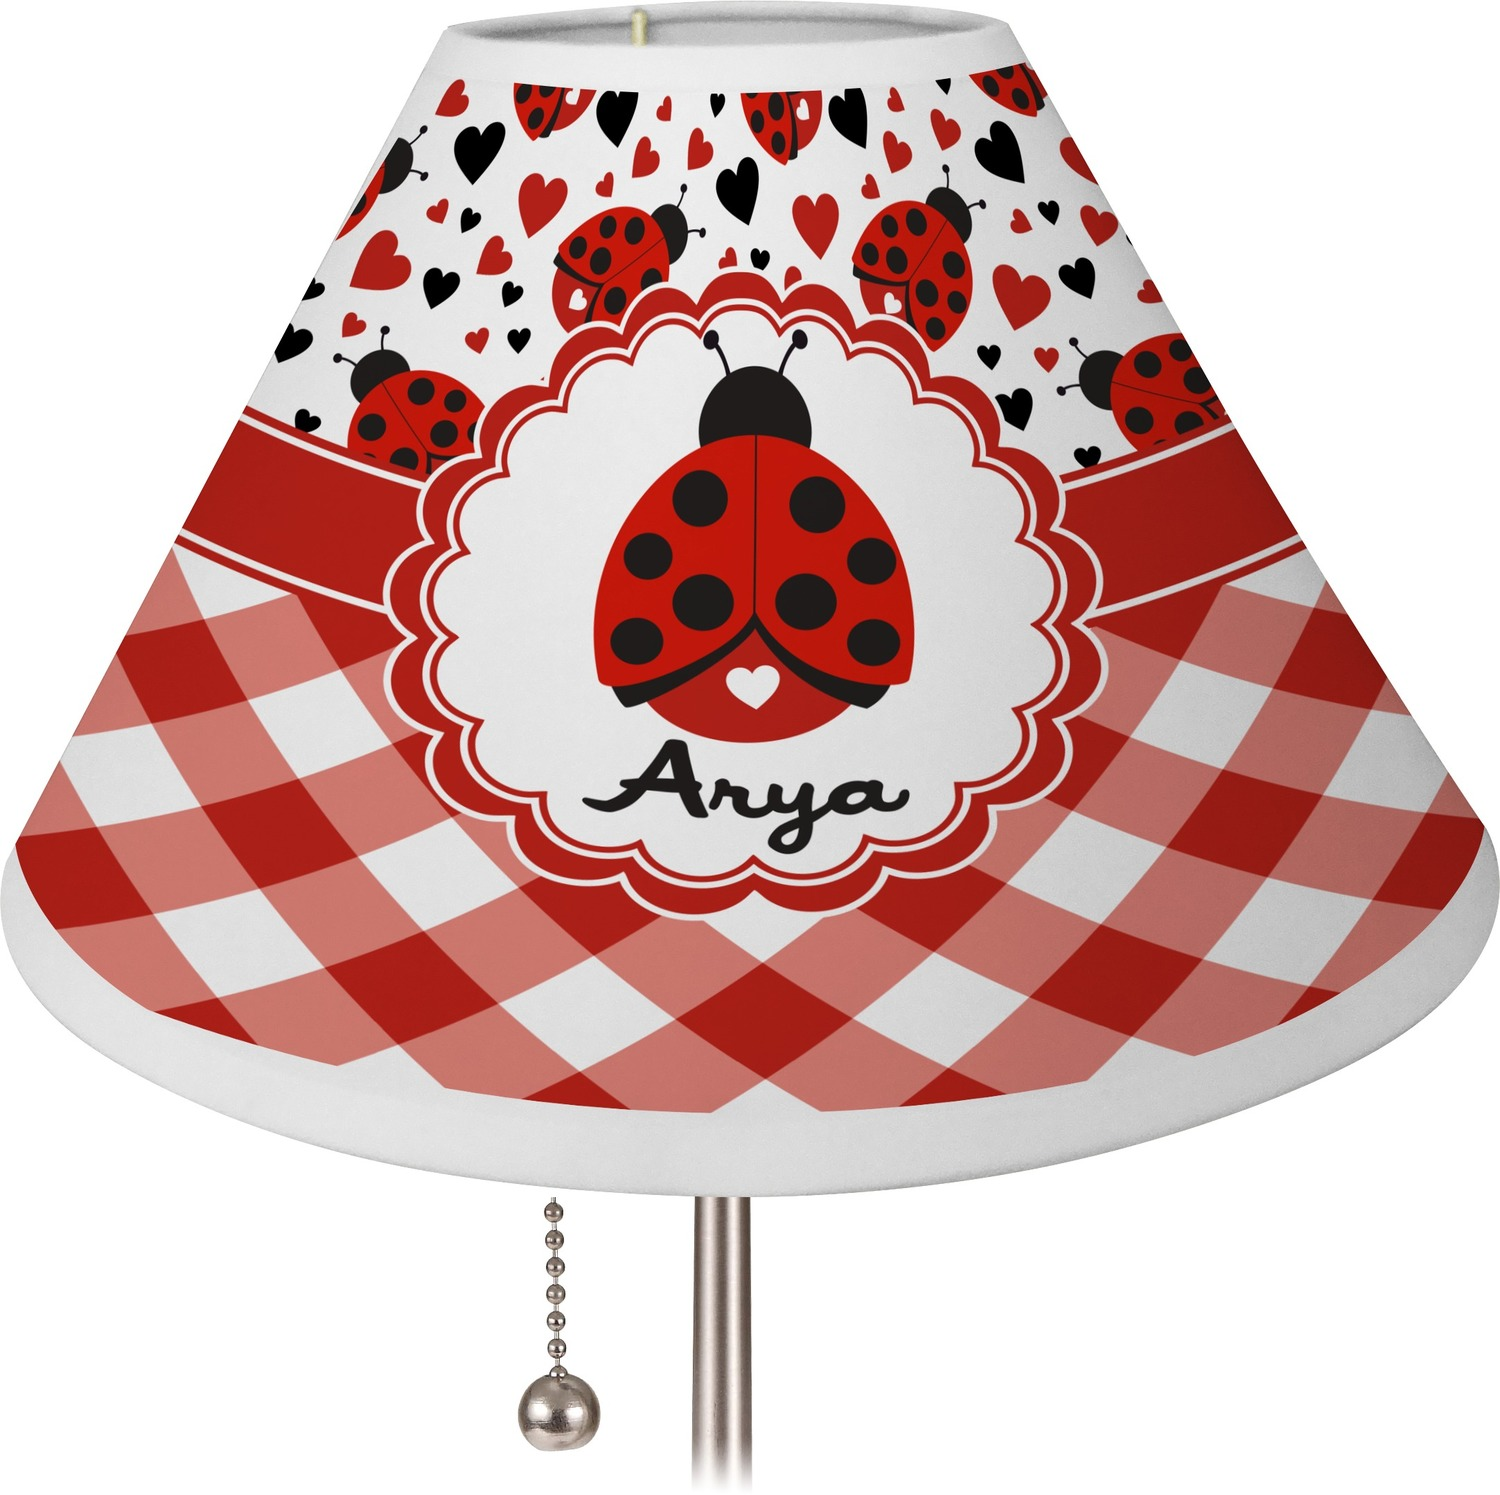 Ladybug lamp 10 methods to give your home different look and ladybug lamp 10 methods to give your home different look and illumination warisan lighting mozeypictures Choice Image